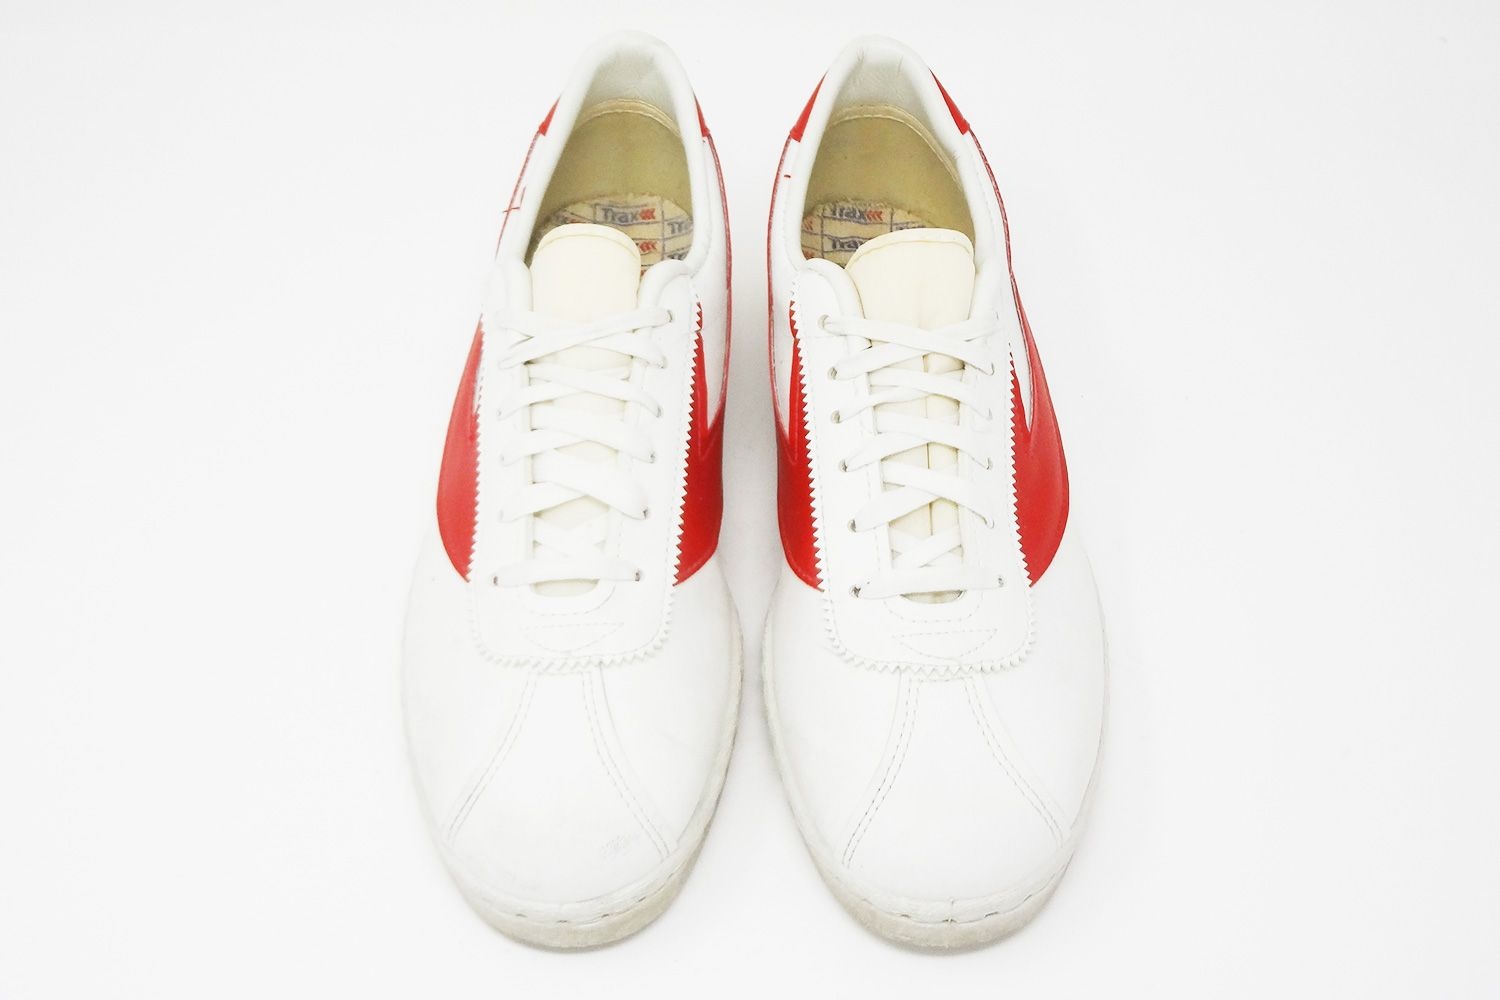 Rare 80s Trax by Kmart vintage Nike